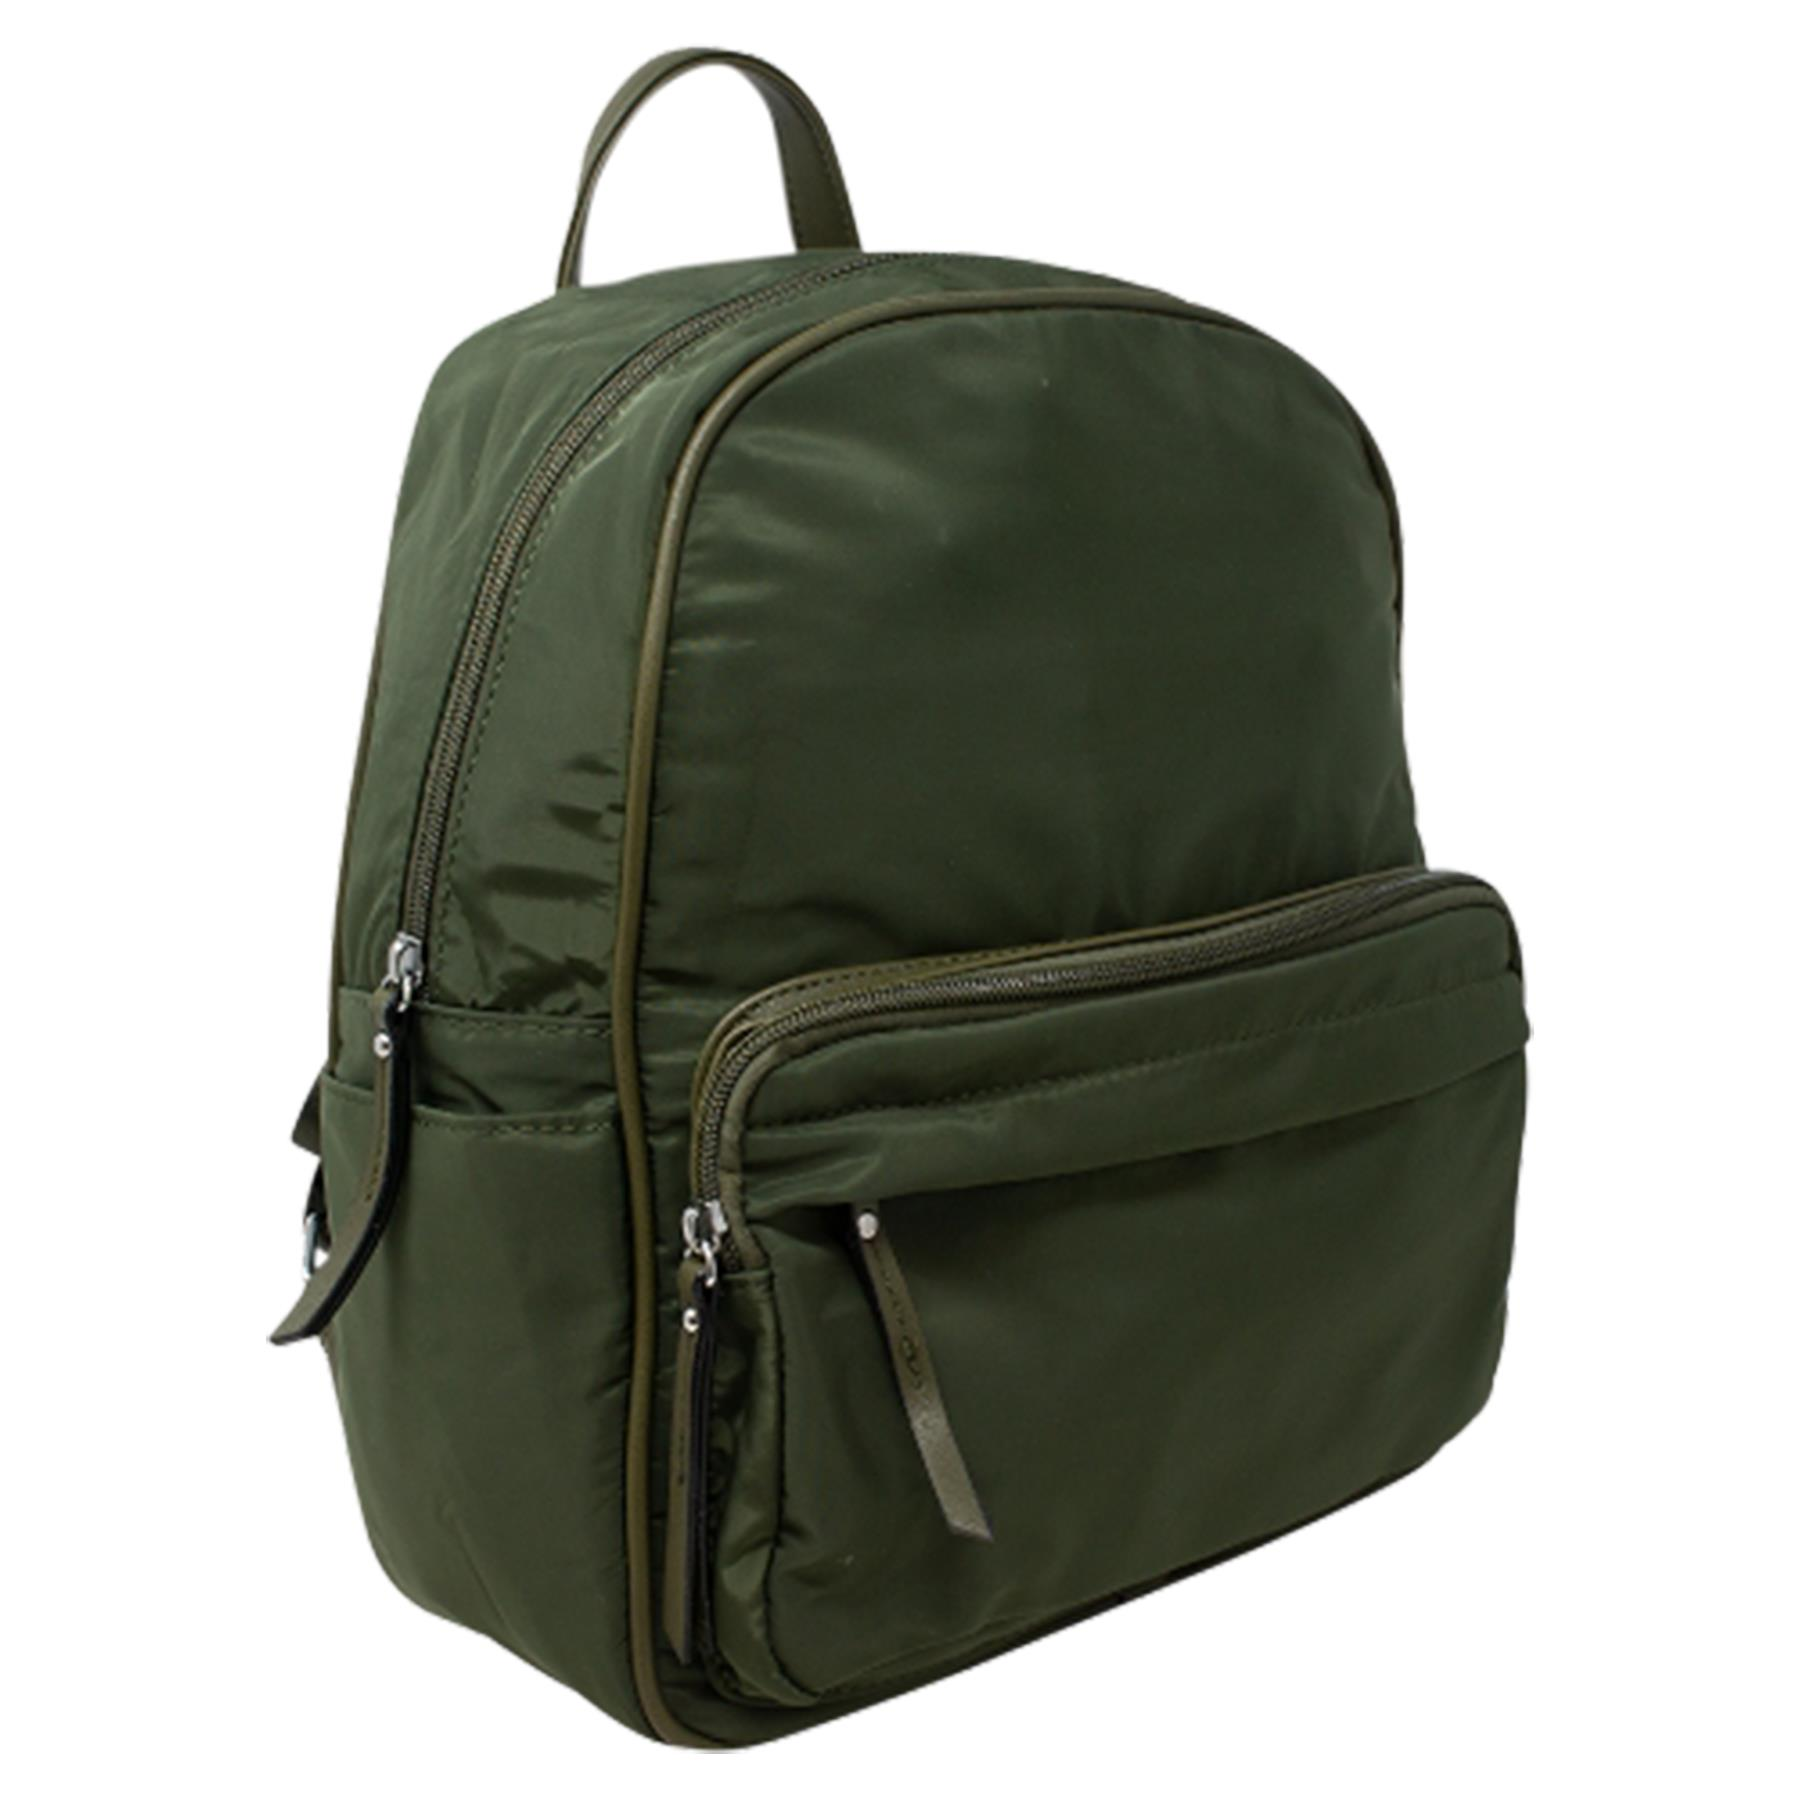 New-Unisex-Plain-Nylon-Showerproof-School-College-Backpack-Rucksack thumbnail 12